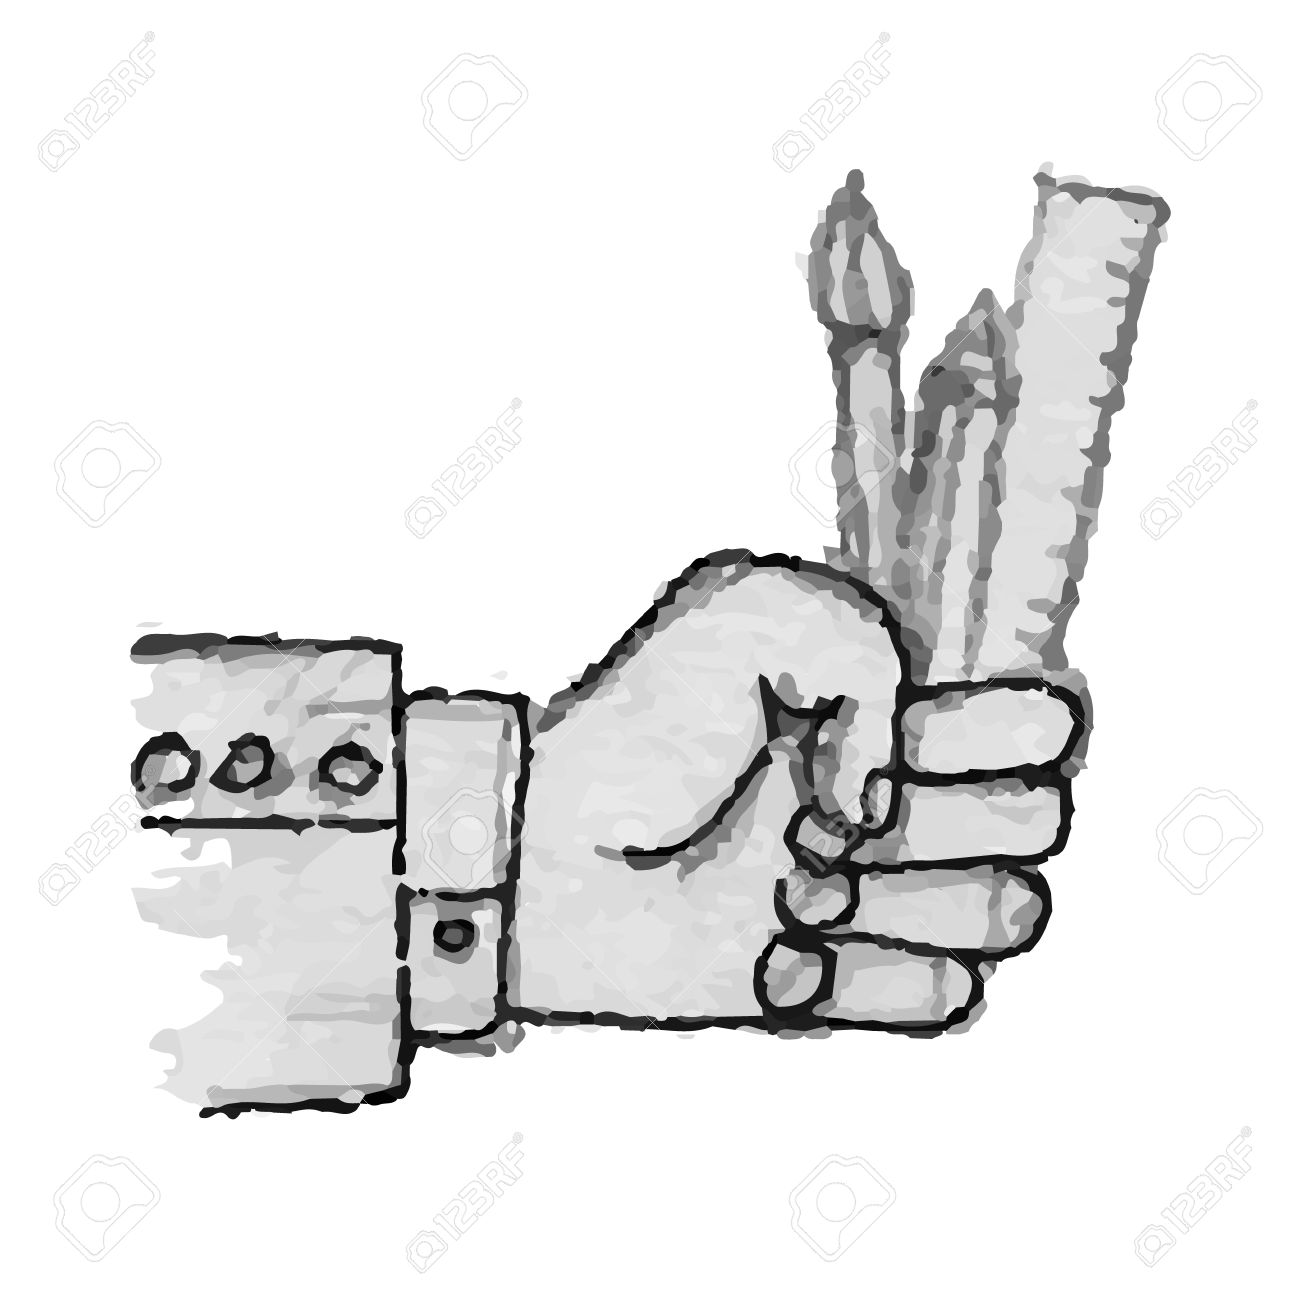 Sketch watercolor hand holding a brush ruler and pencil stock vector 35425372